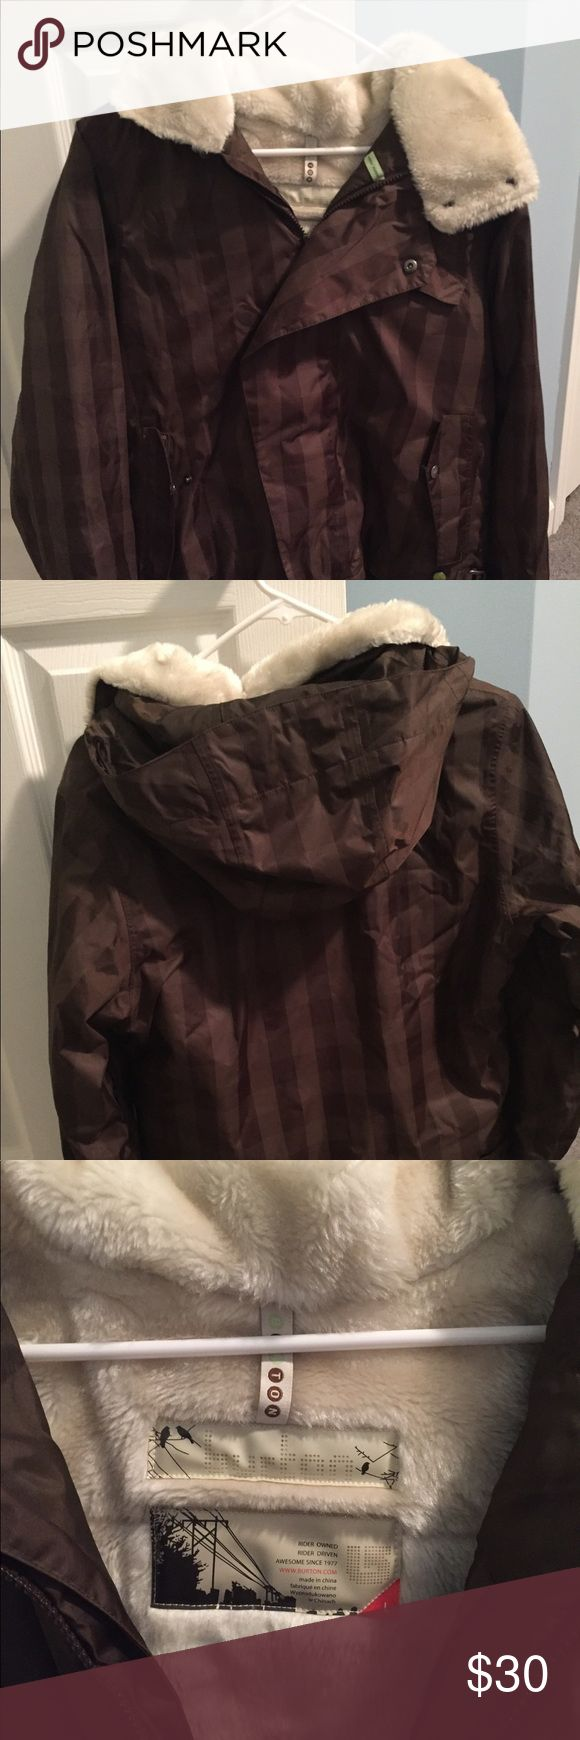 Women's Burton ski jacket Women's Burton ski jacket size large. Brown square pattern. Has a hood. Used but, in great condition and fur is good still :) smoke and pet free home Jackets & Coats Puffers